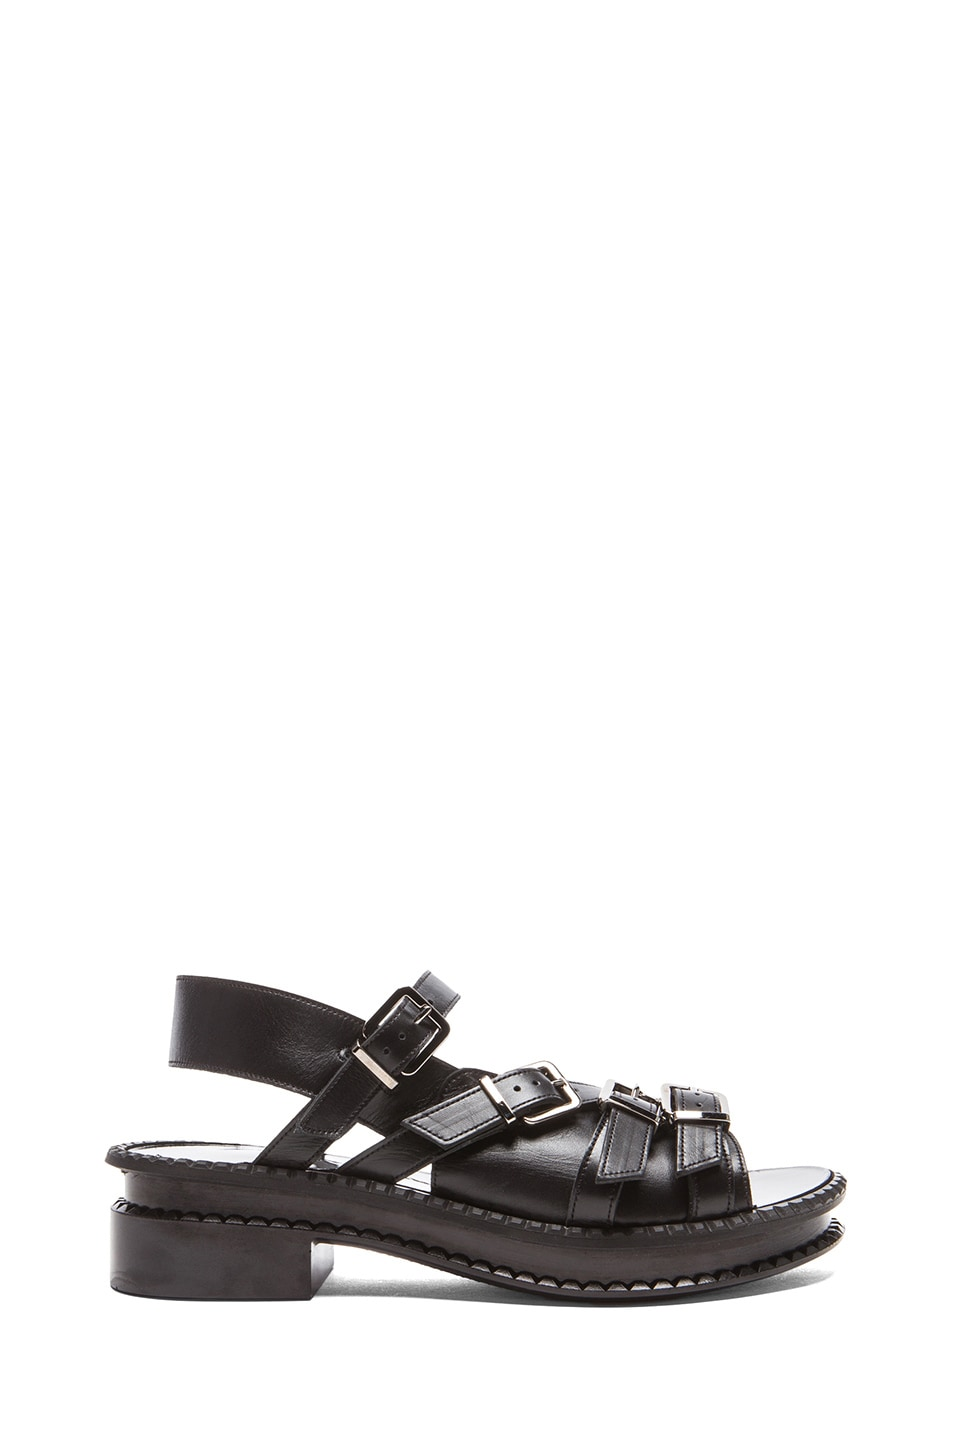 Image 1 of Robert Clergerie Cartas Leather Sandals in Black